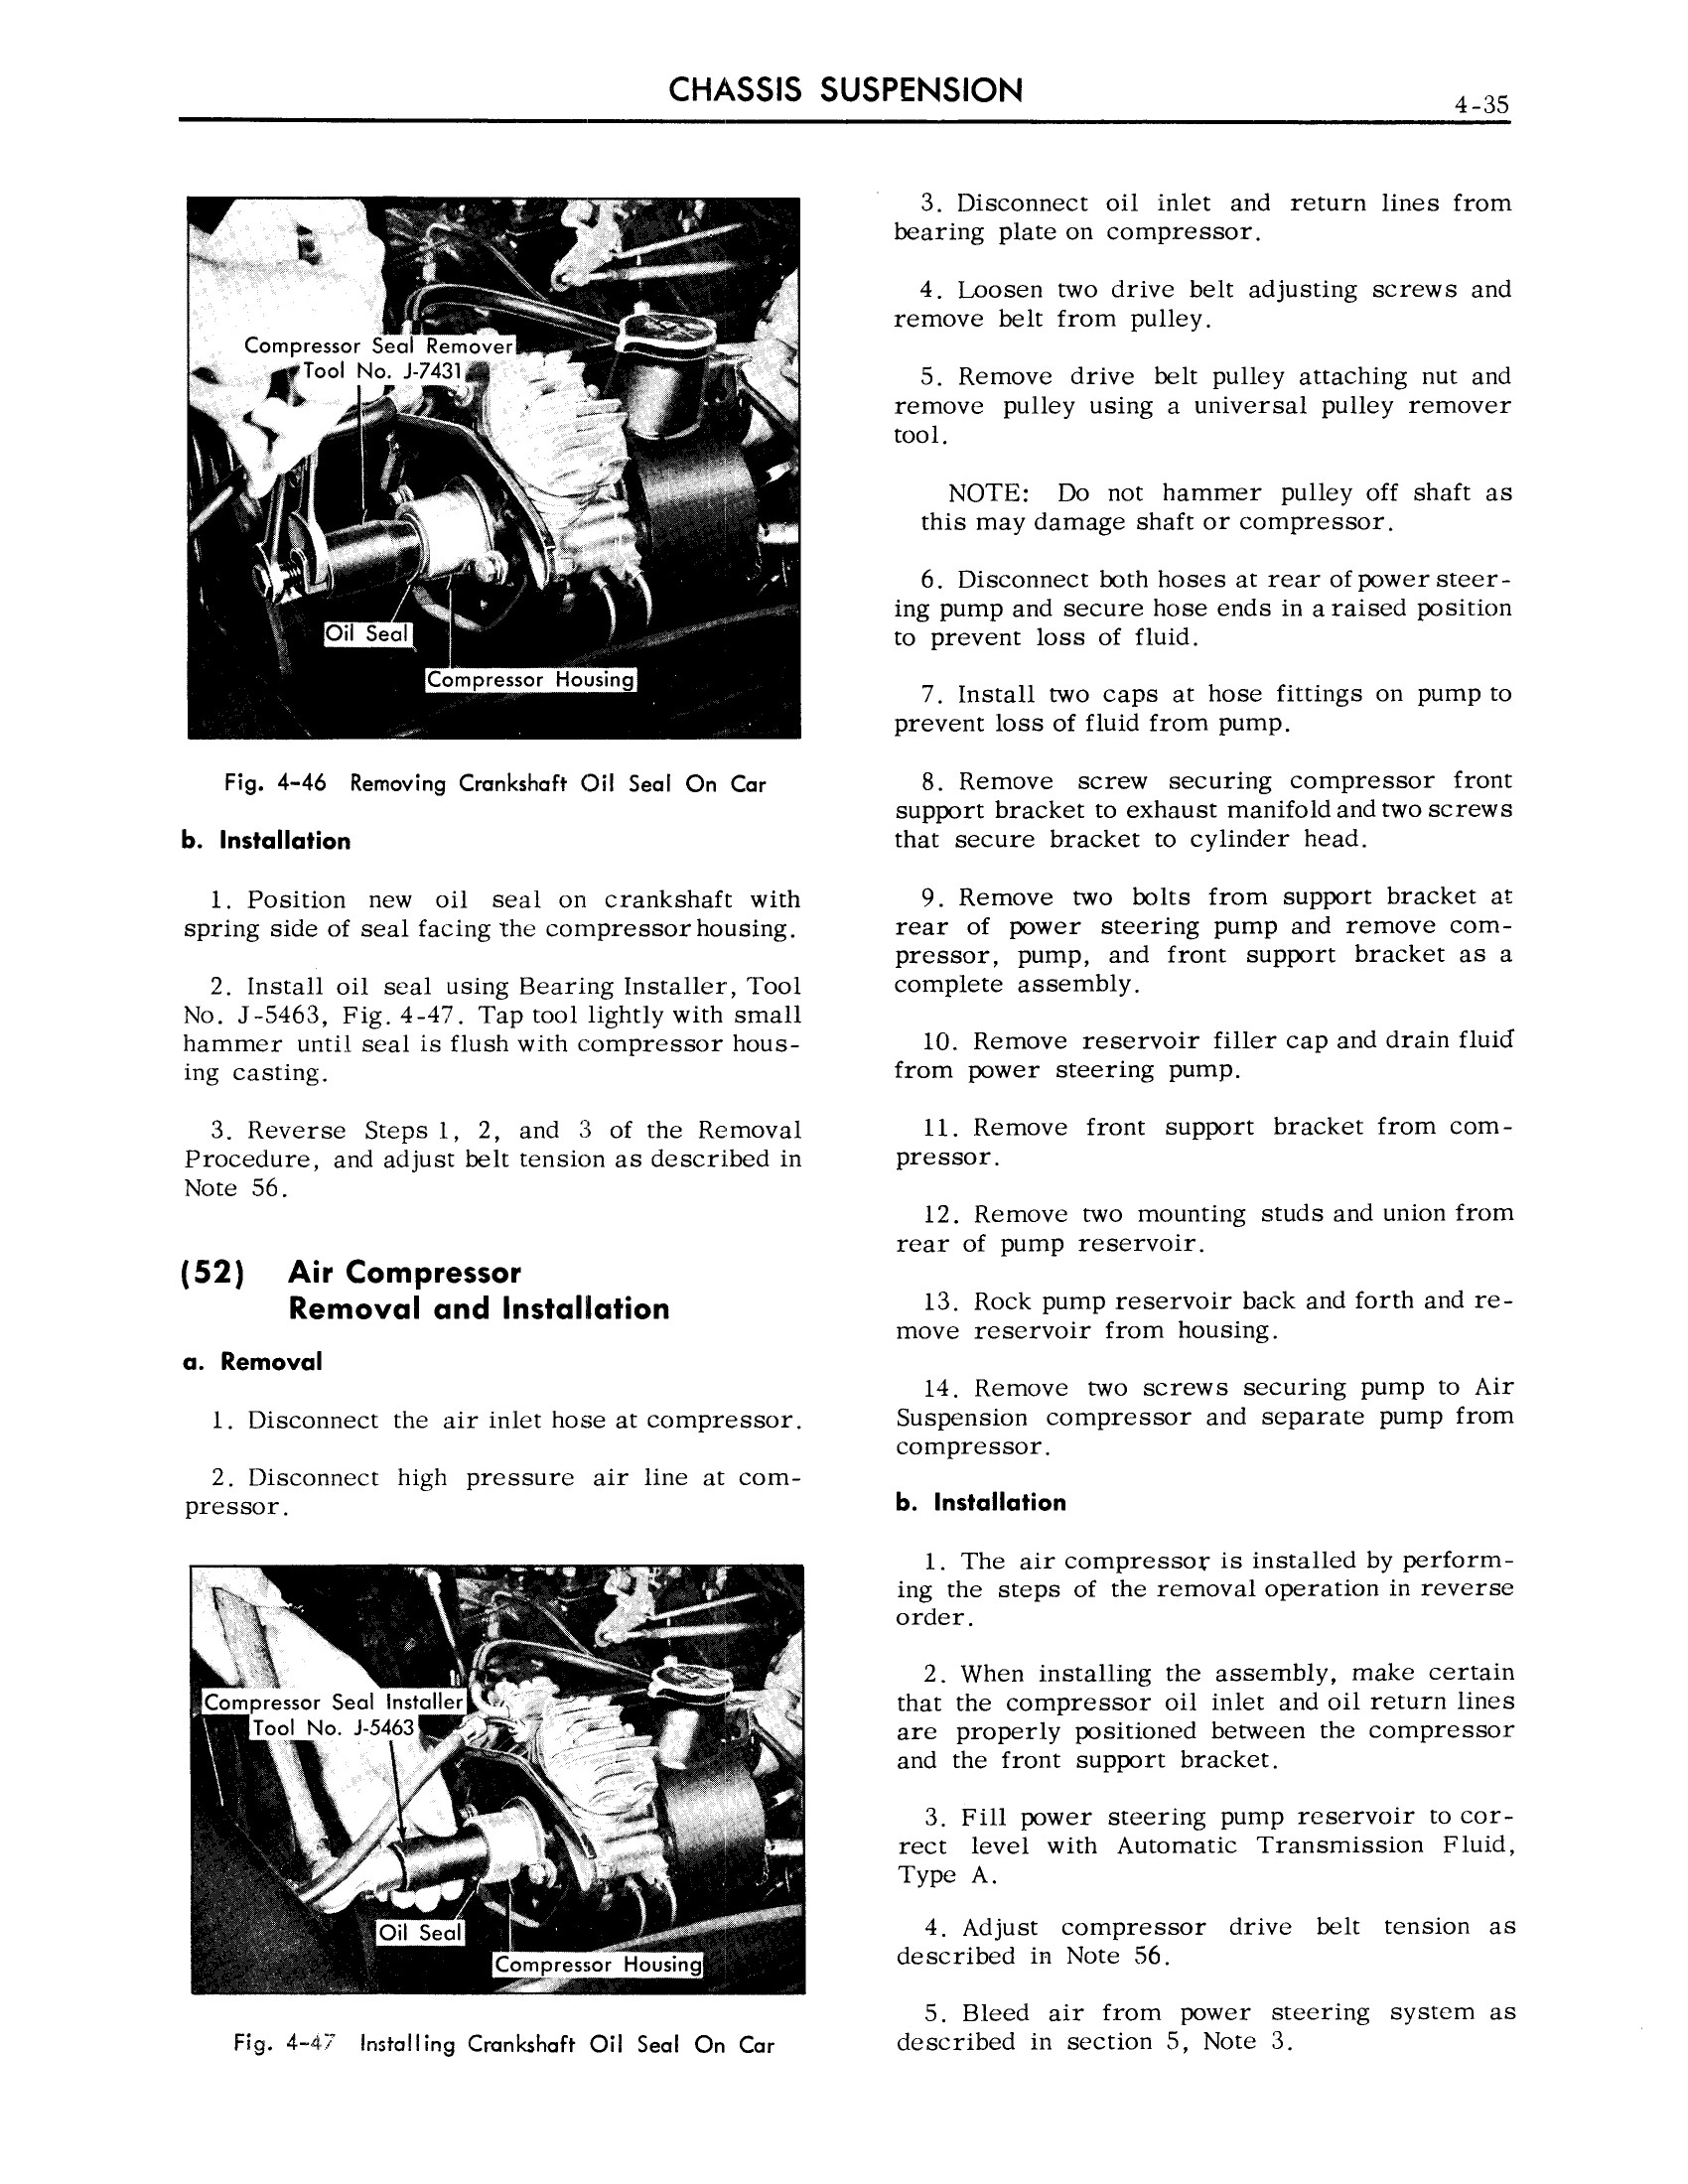 1959 Cadillac Shop Manual- Chassis Suspension Page 35 of 57